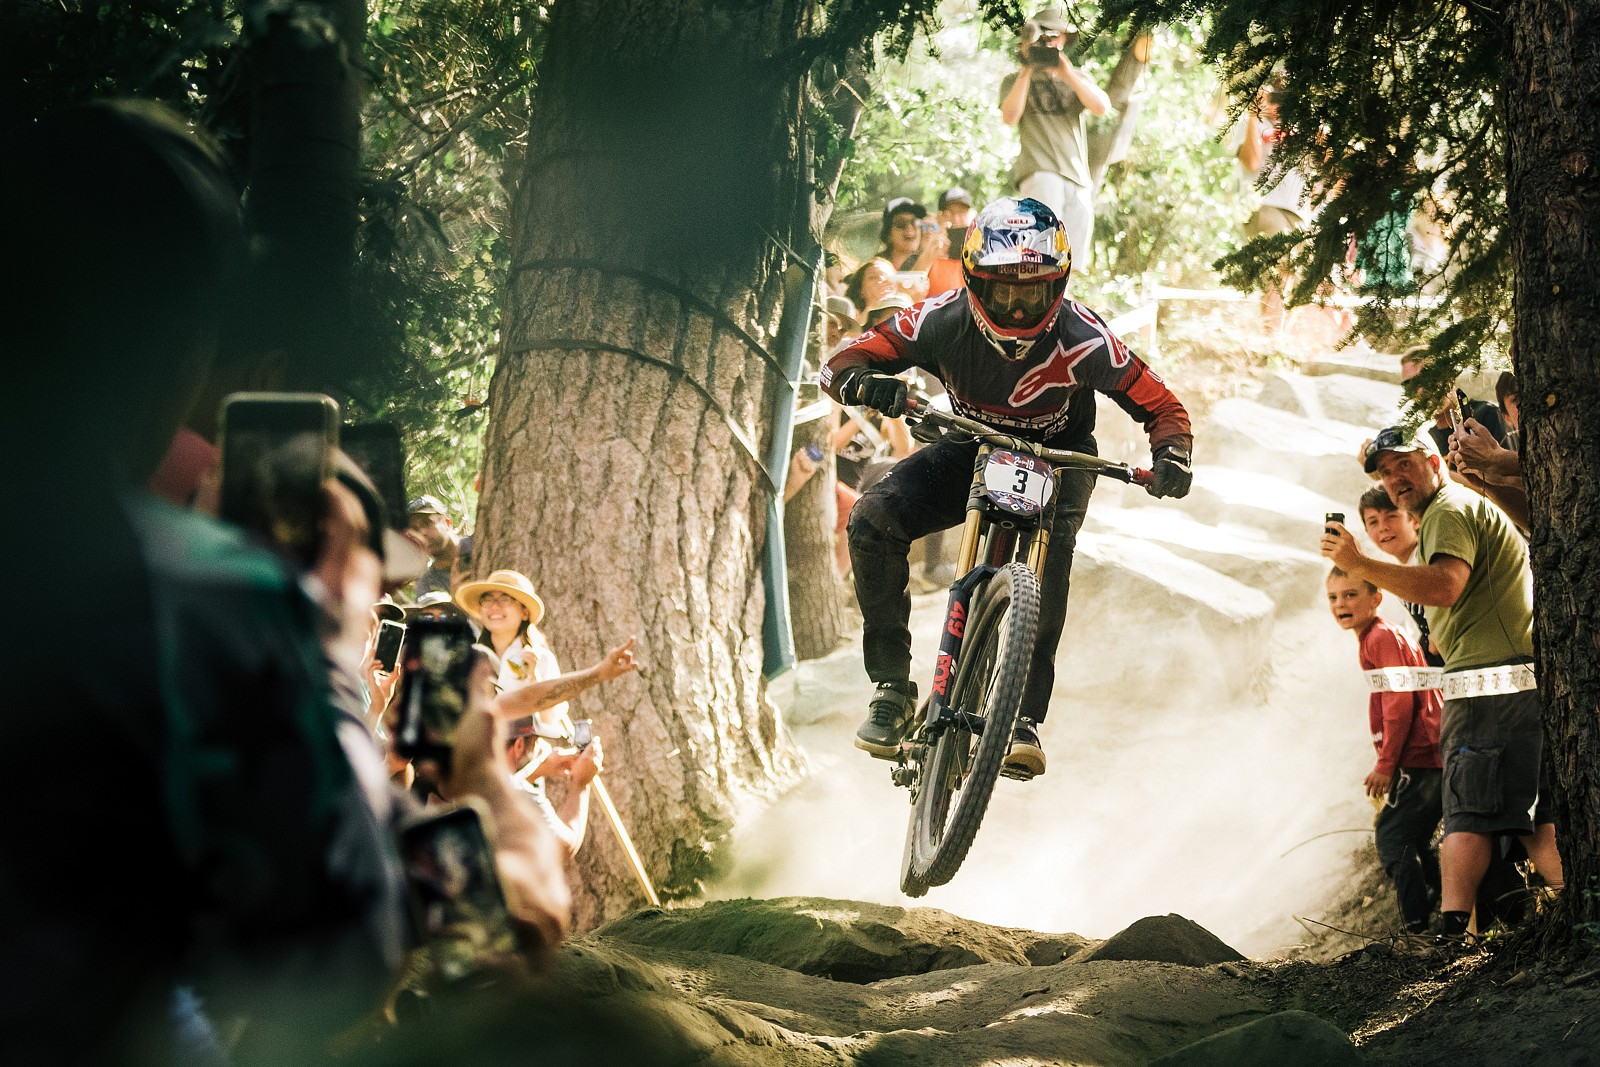 2019USOpenMTB DH yellow-30 - ALeedomPhotography - Mountain Biking Pictures - Vital MTB